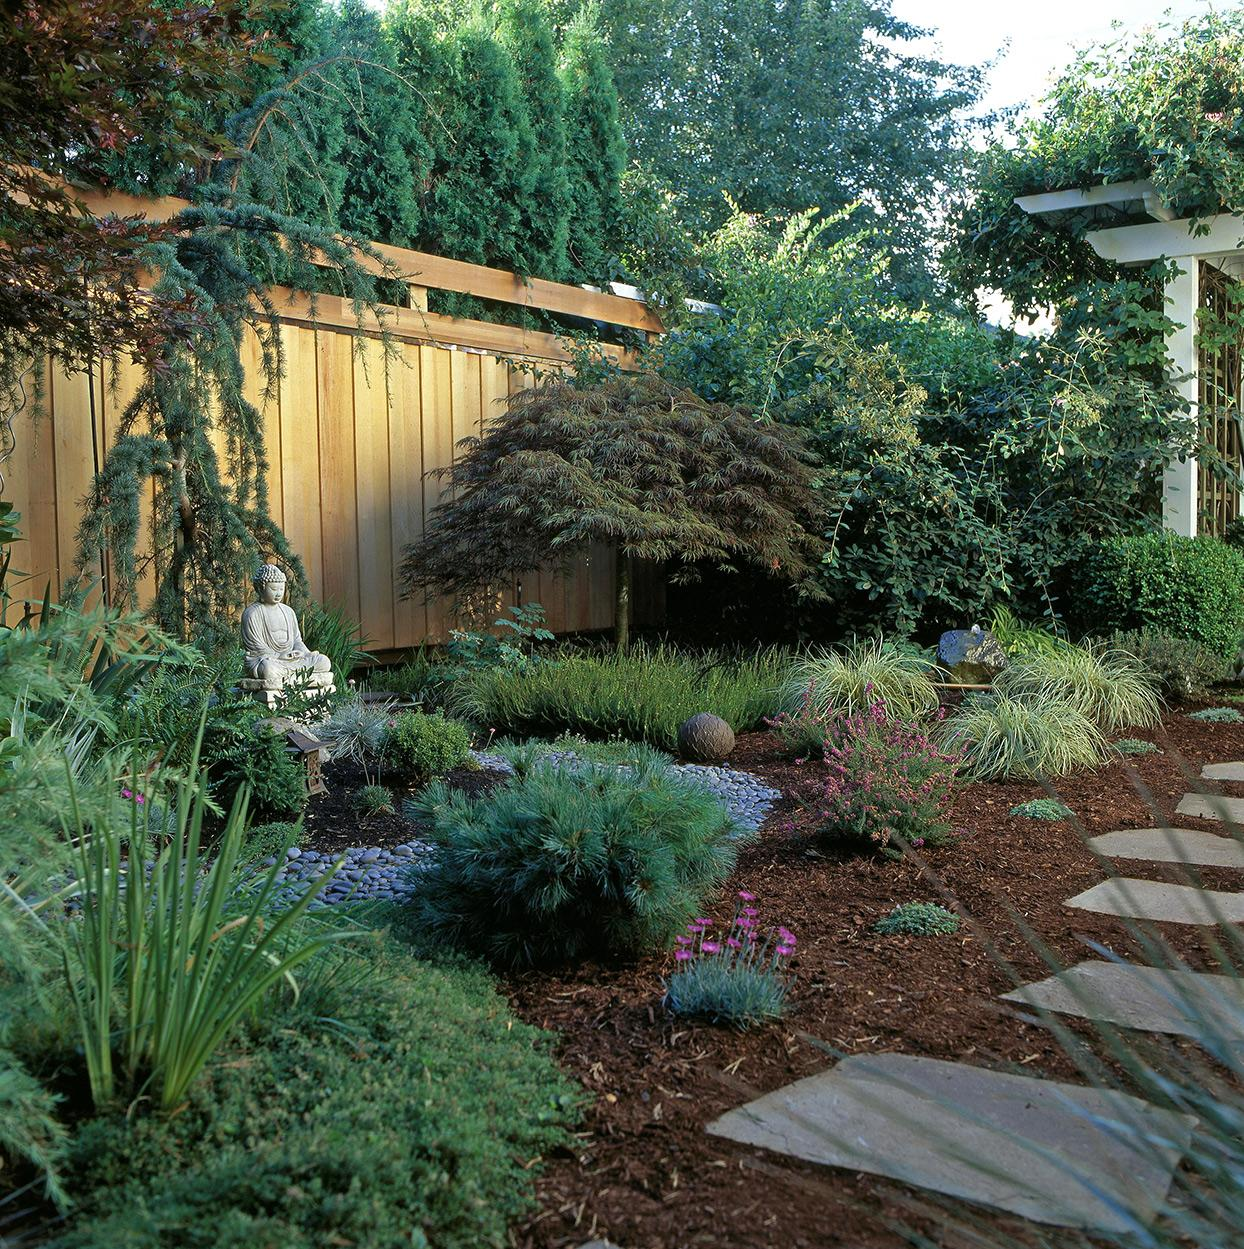 Best Front Garden Designs For Kerb Appeal: Front Yard Landscaping Ideas To Boost Your Home's Curb Appeal